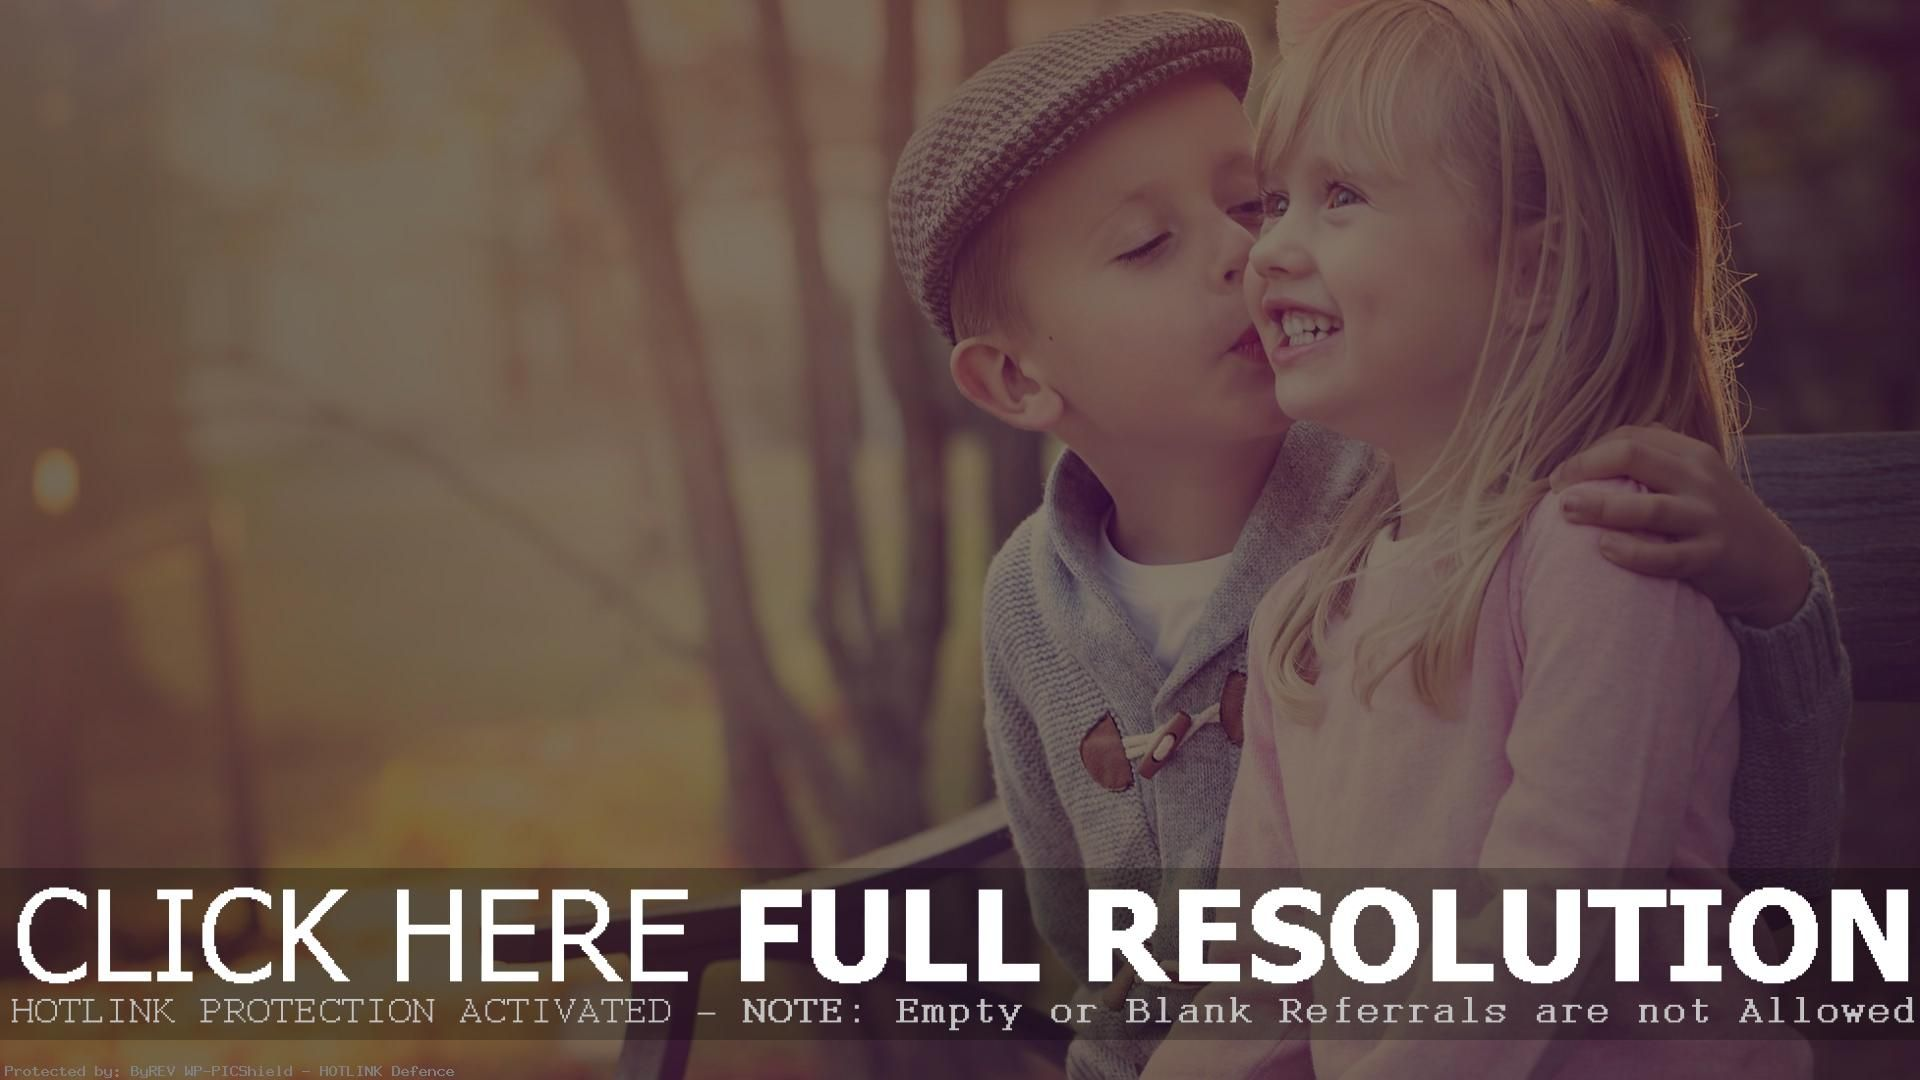 Cute Babies Girl and Boy Kissing Wallpapers Cool Pictures